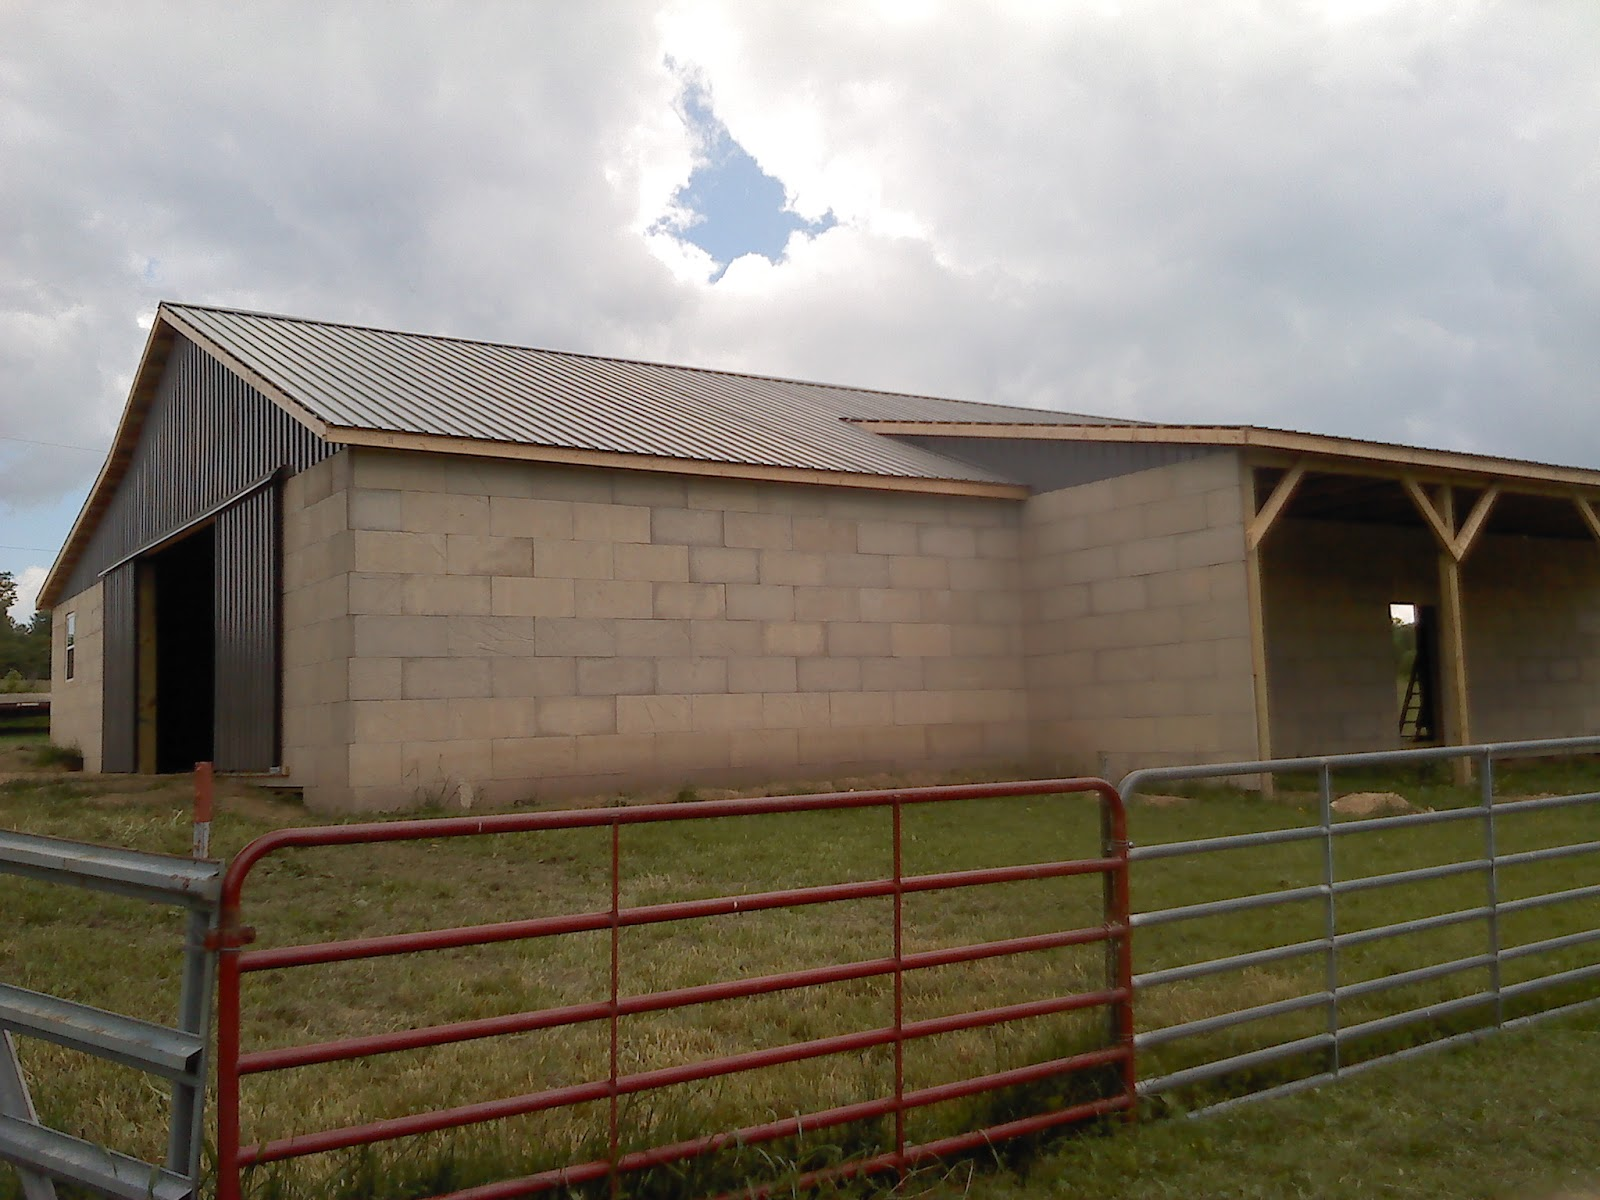 Builderscrete Cellulose Products: A Rustic Hay Barn Using ...